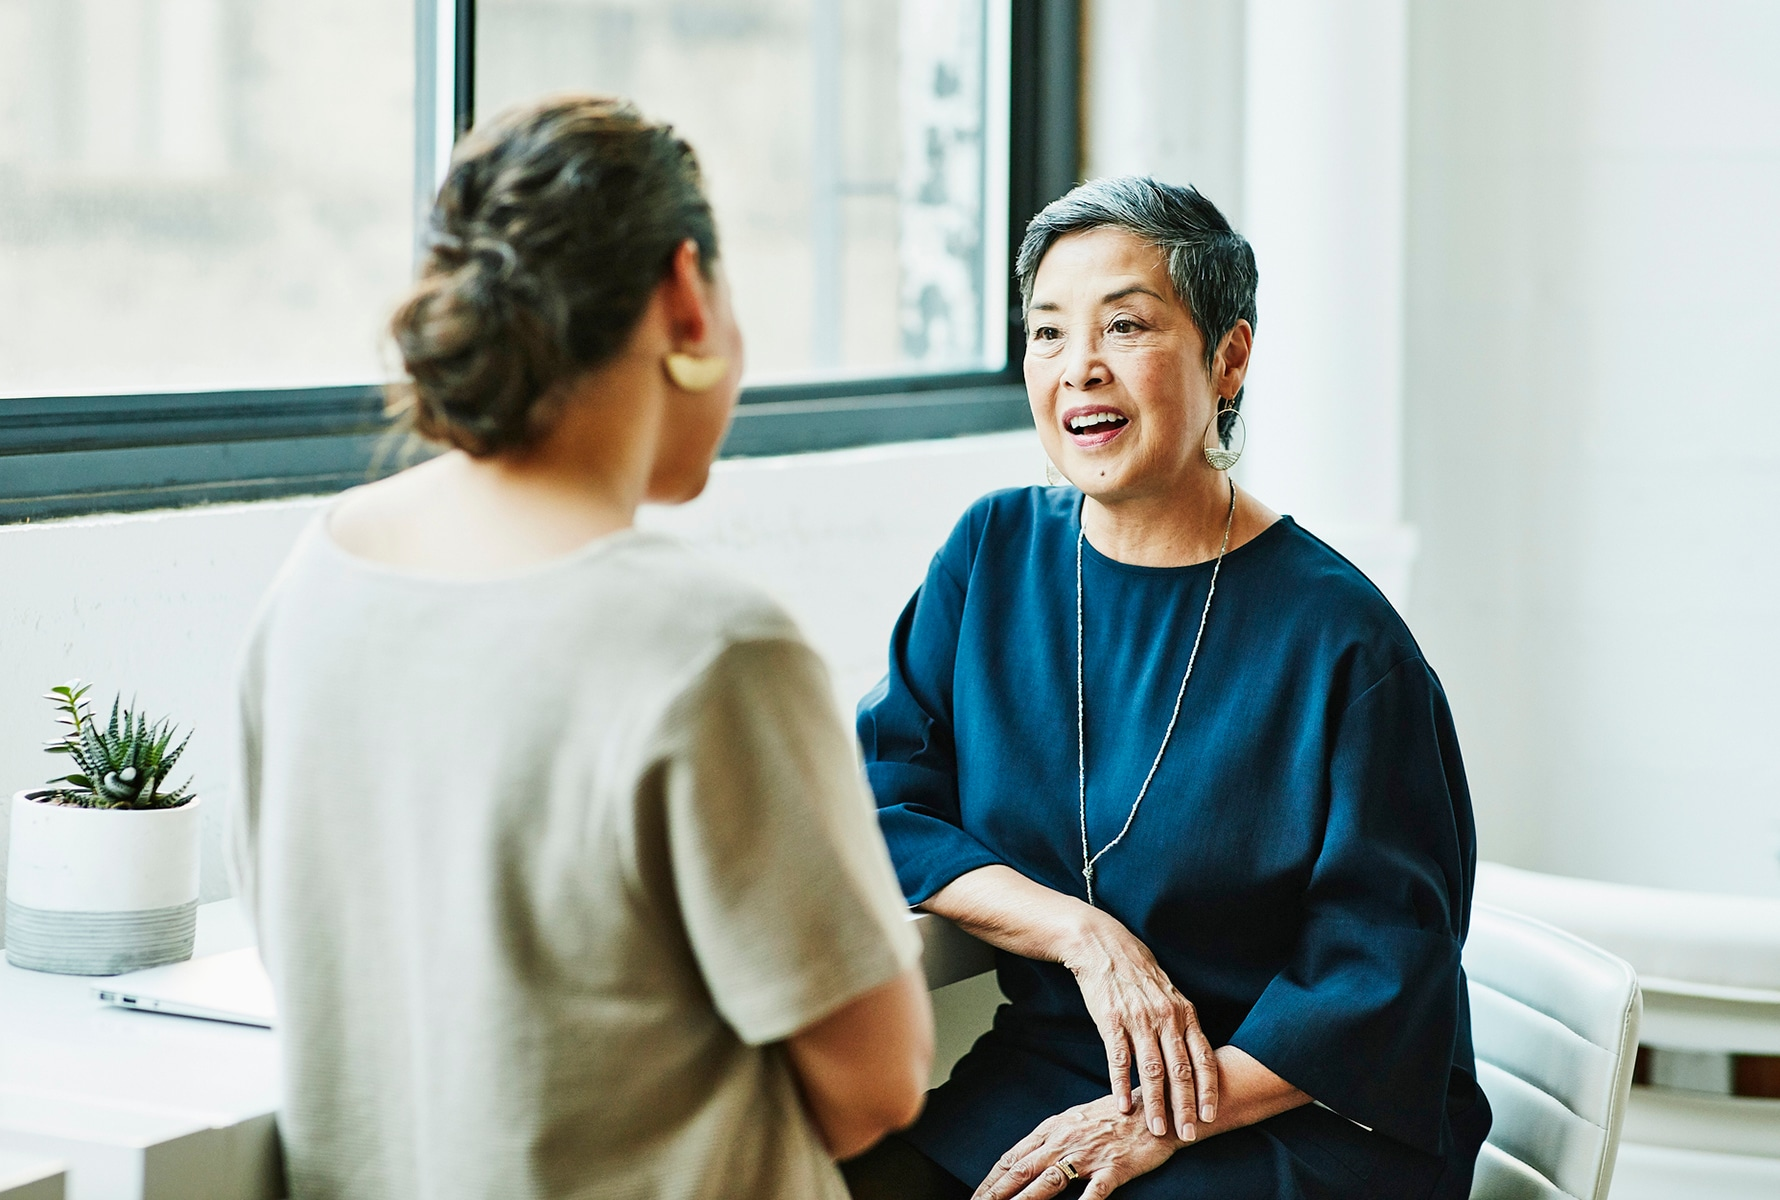 Two women sitting down and talking to each other